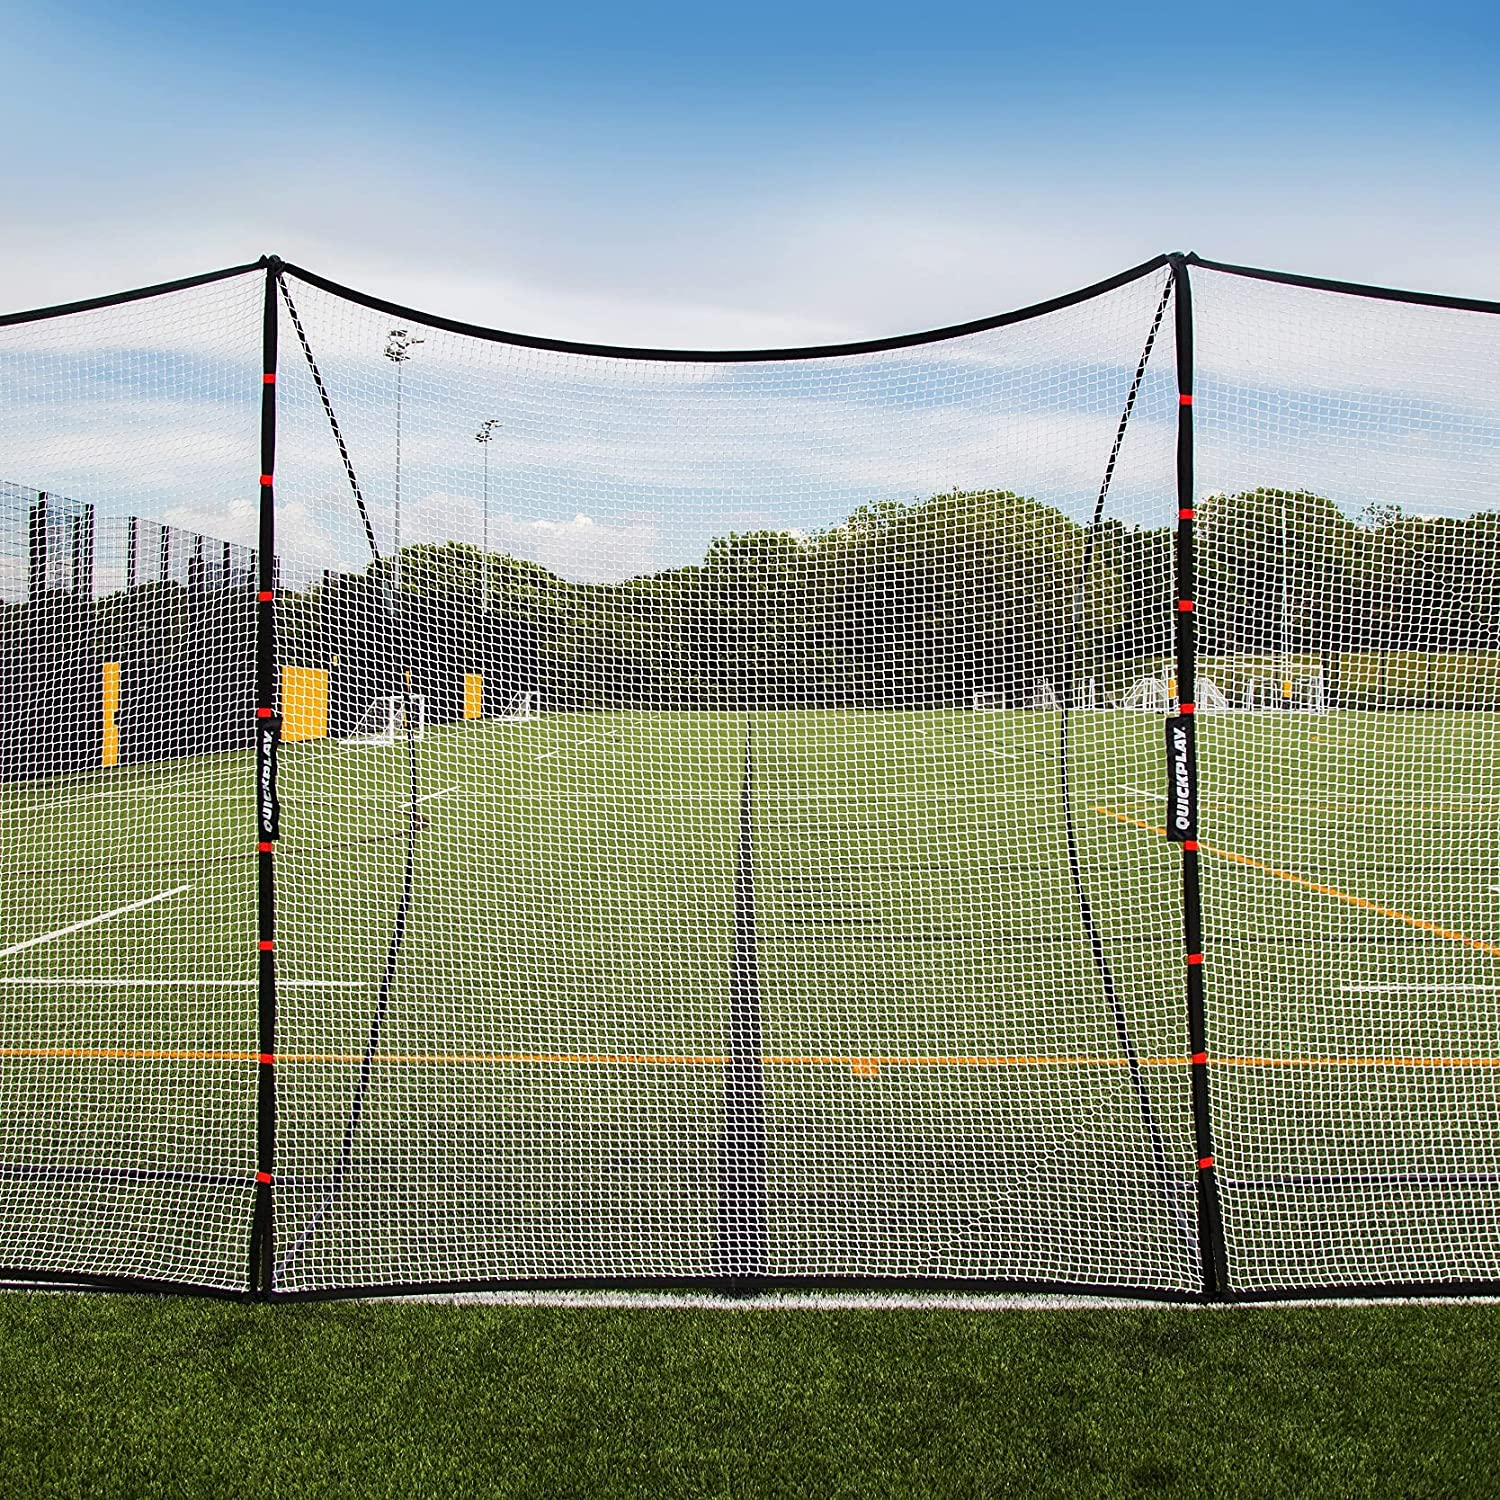 QUICKPLAY Portable Backstop Netting Available in - Nashville-Davidson Mall 12 Cheap mail order specialty store x 32 9'